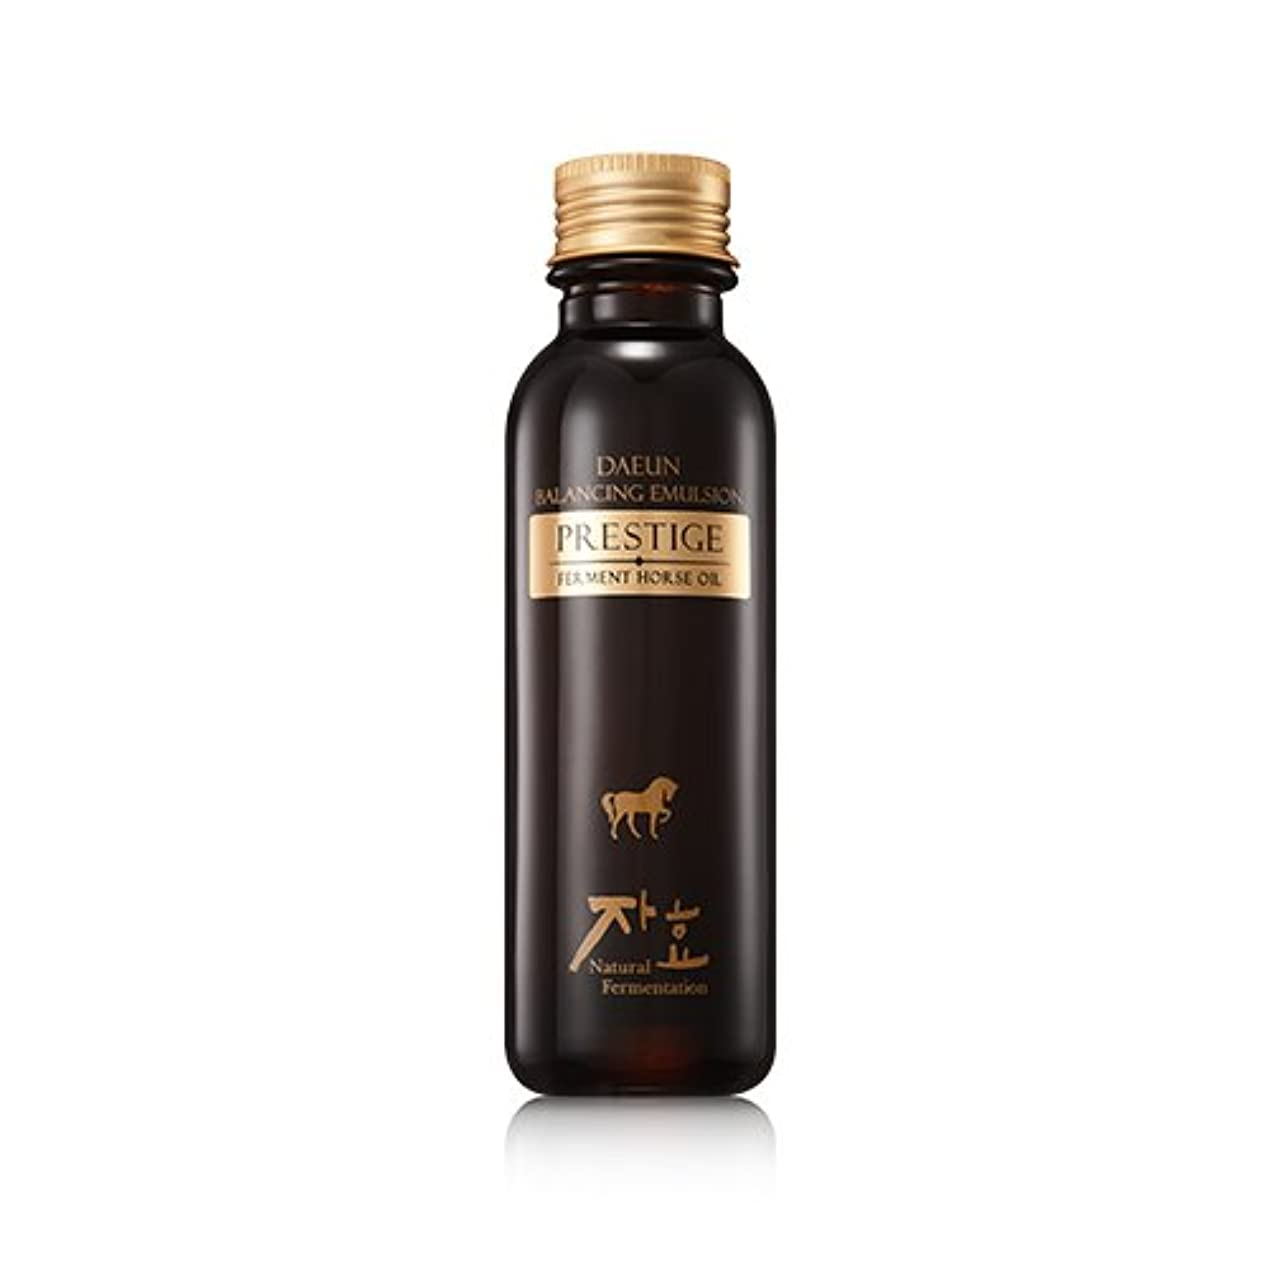 代表生活アパートZHAHYO Daeun Balancing Prestige Fermented Horse Oil Emulsion(Lotion) 150ml/Korea Cosmetics